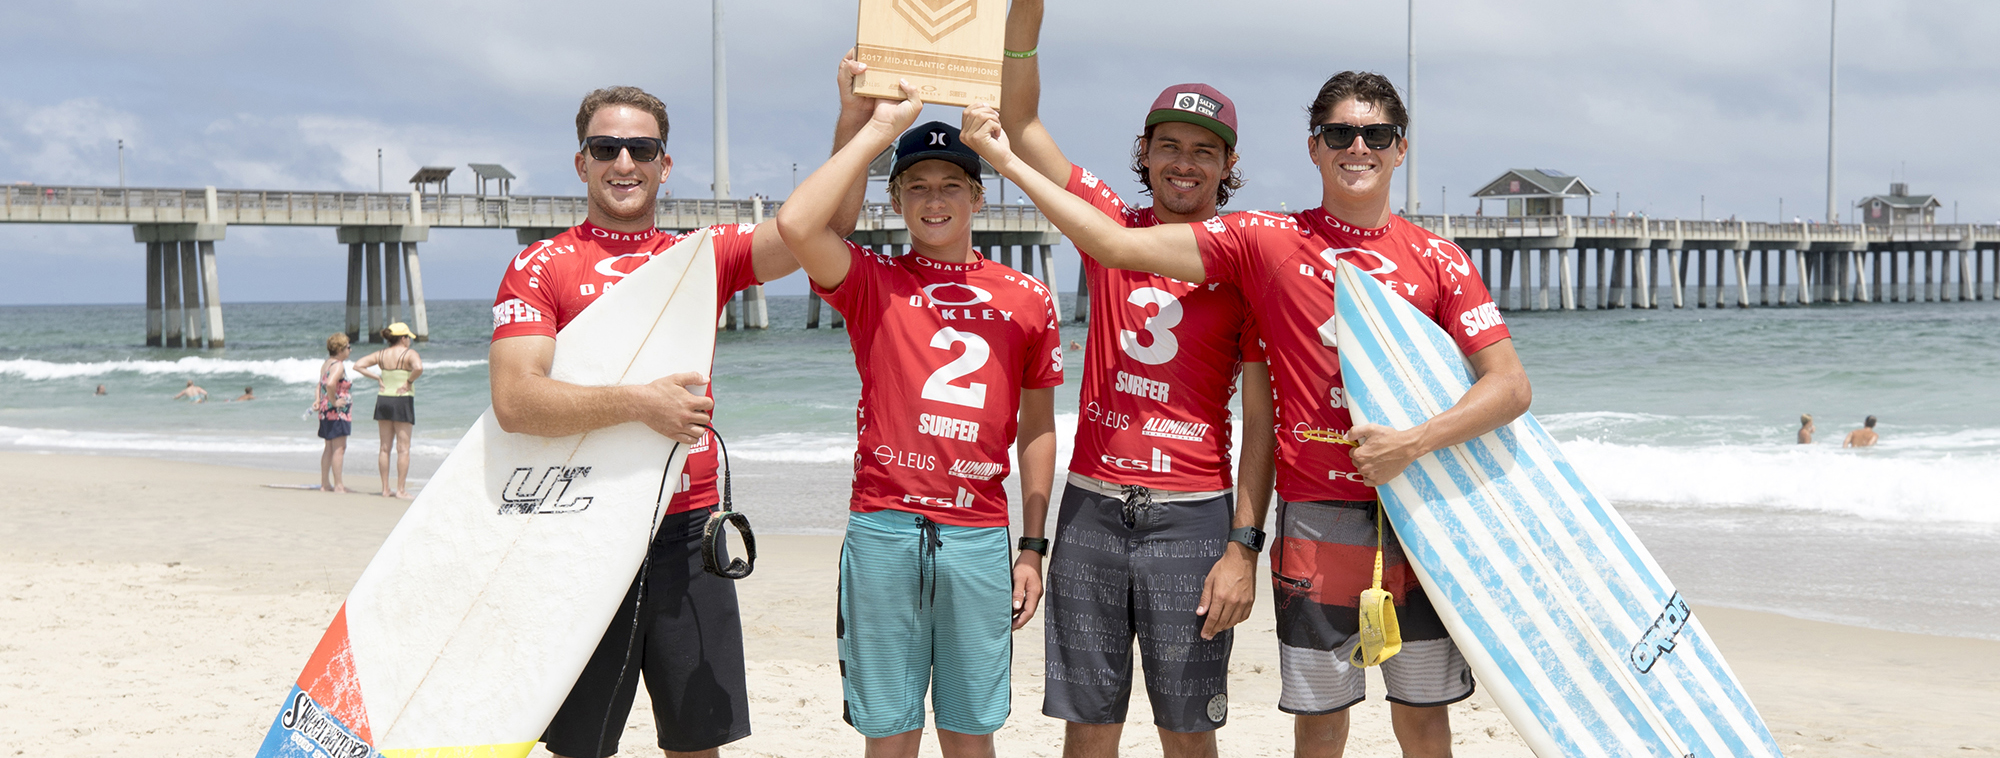 SWEETWATER SURF SHOP FOUR-PEATS THE MID-ATLANTIC